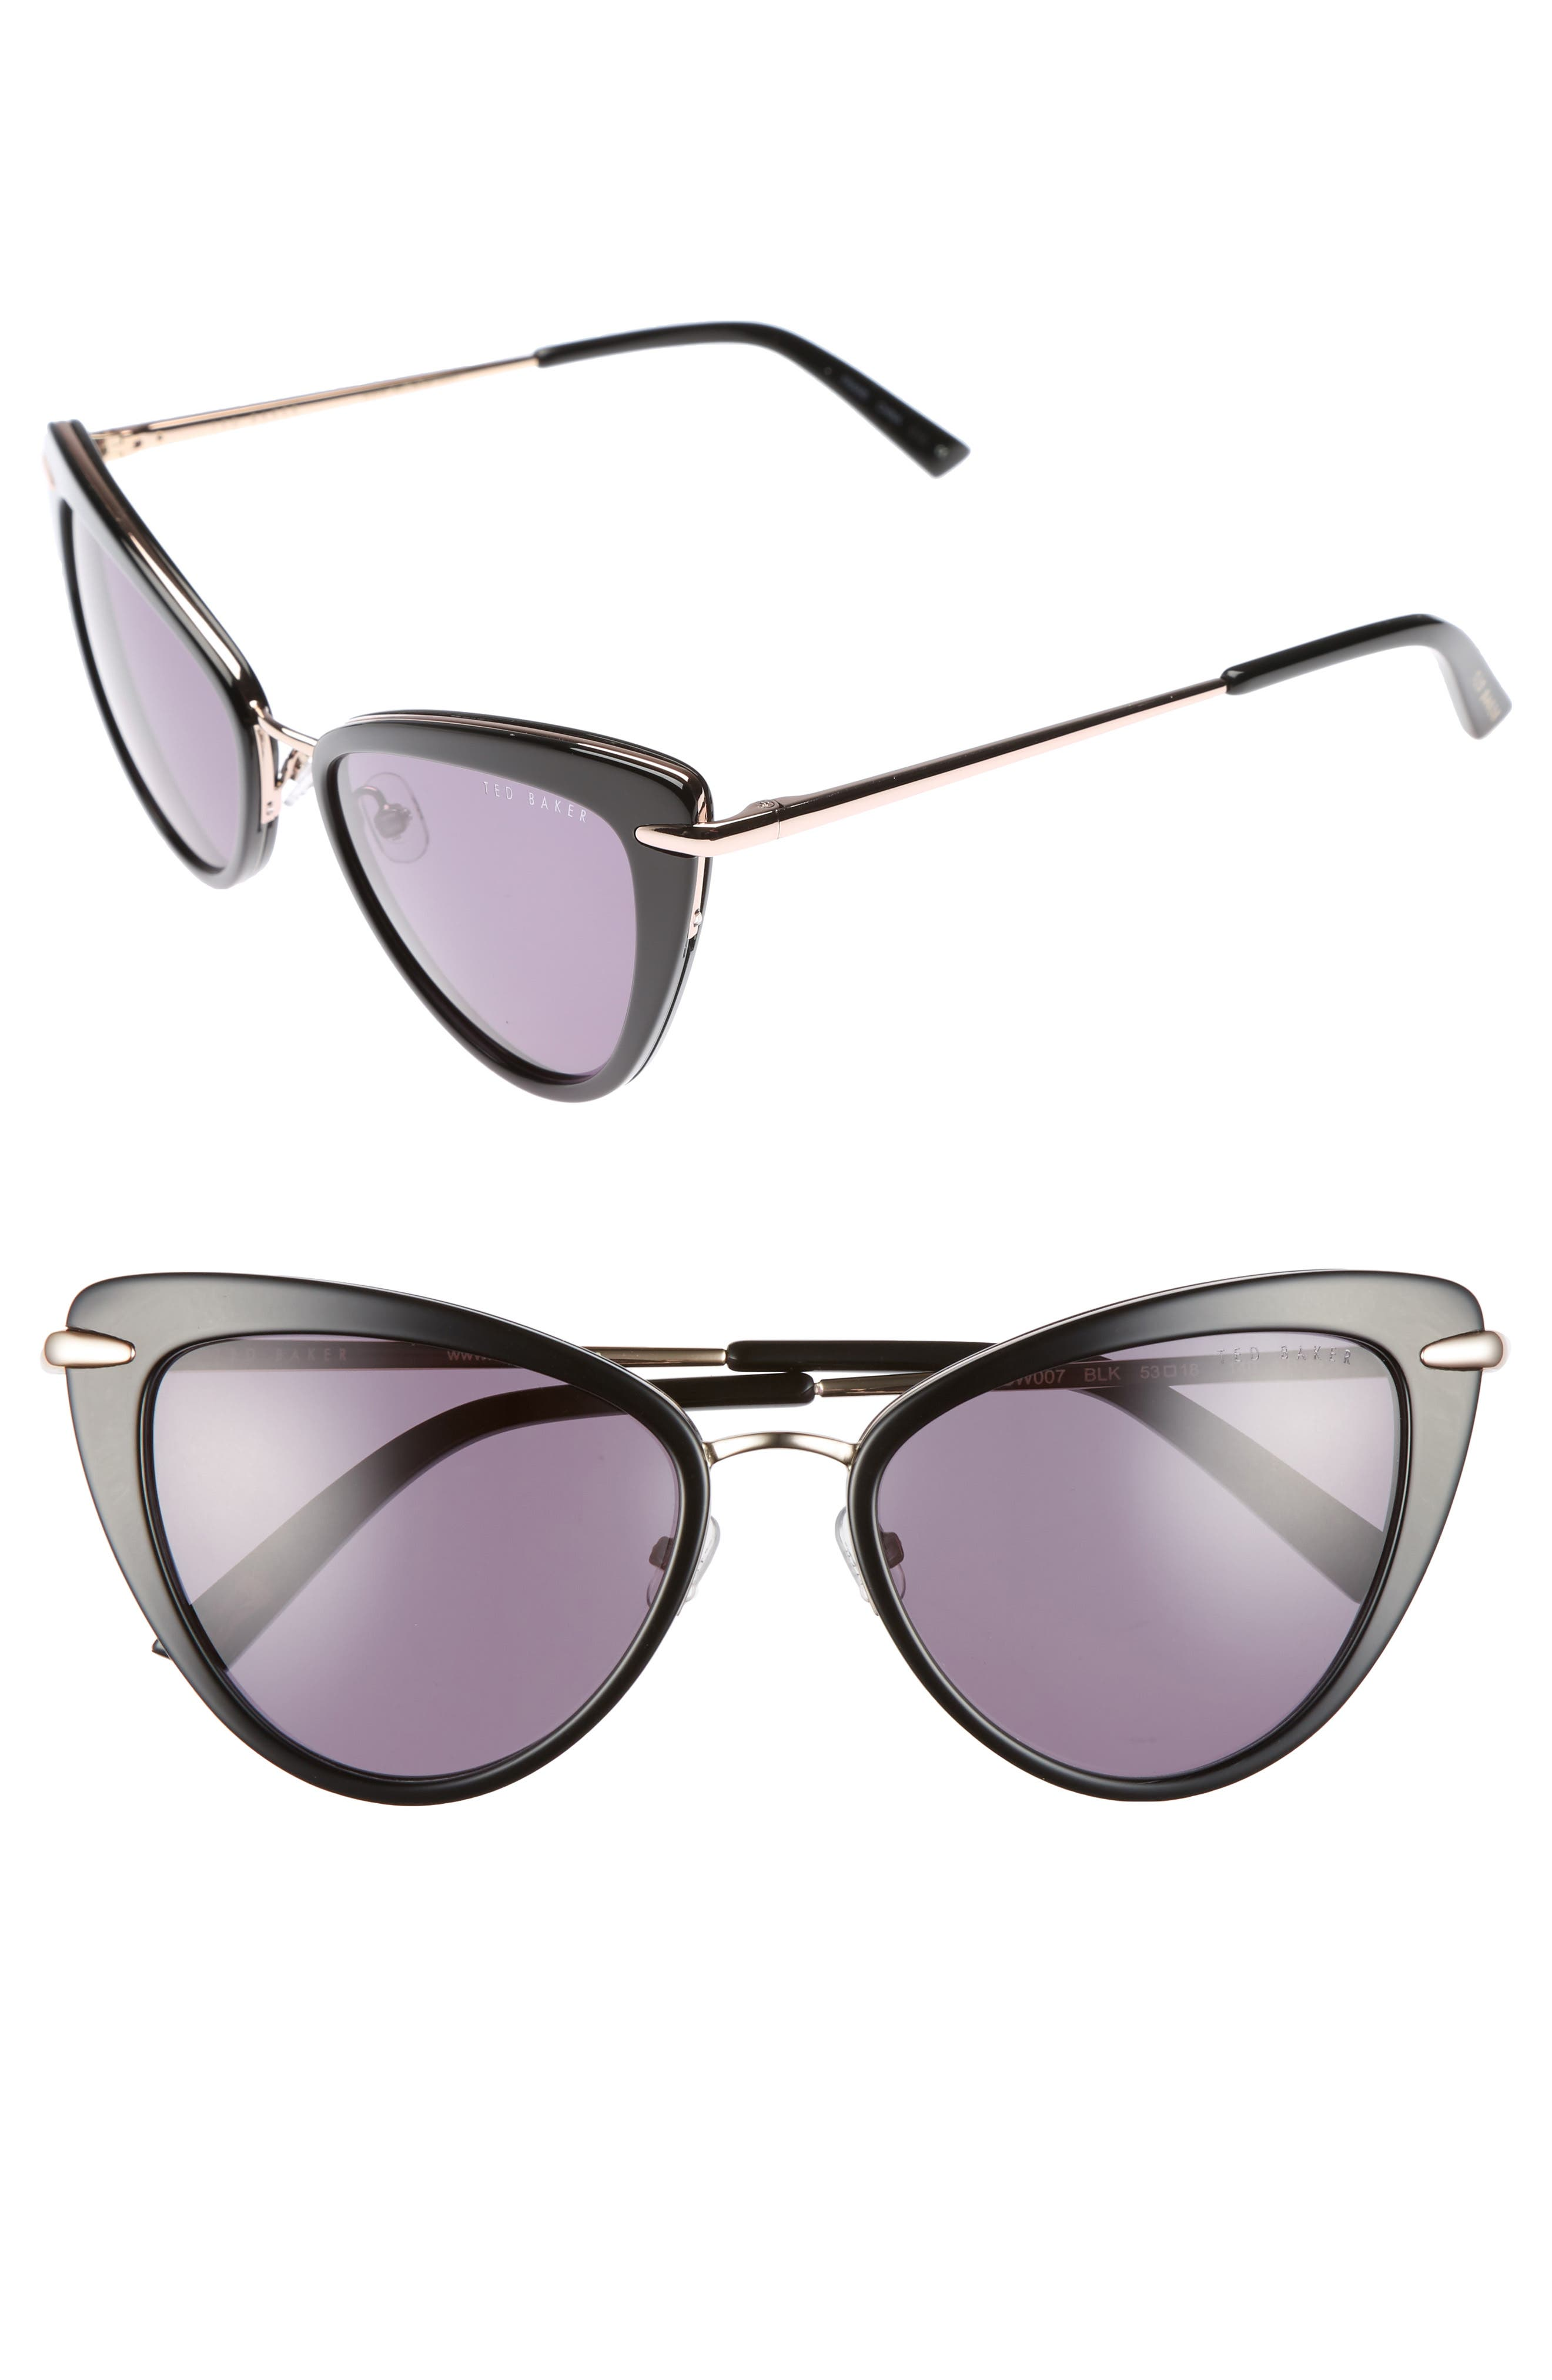 Main Image - Ted Baker London 53mm Cat Eye Sunglasses